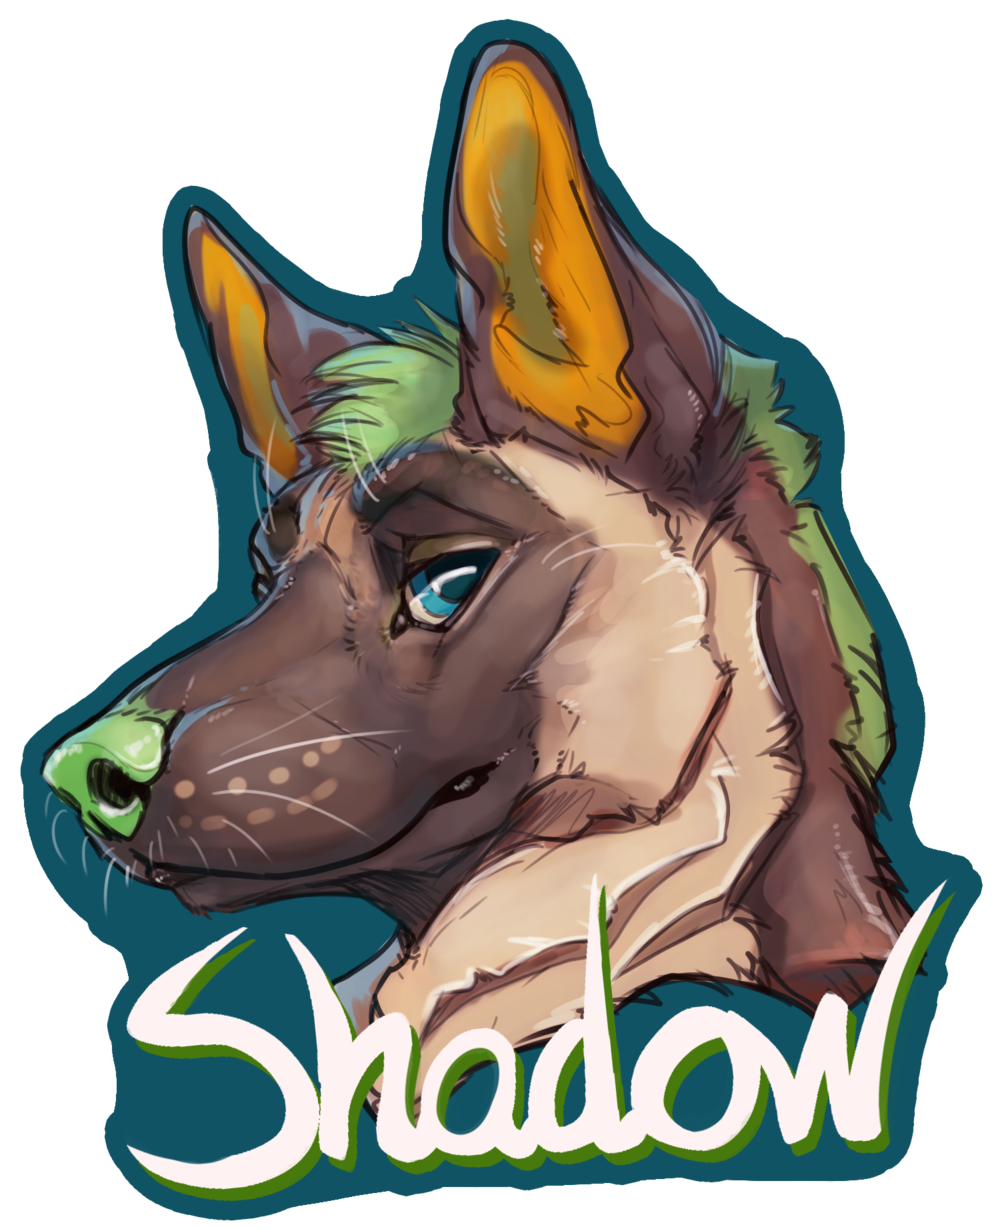 shadowbadge.png